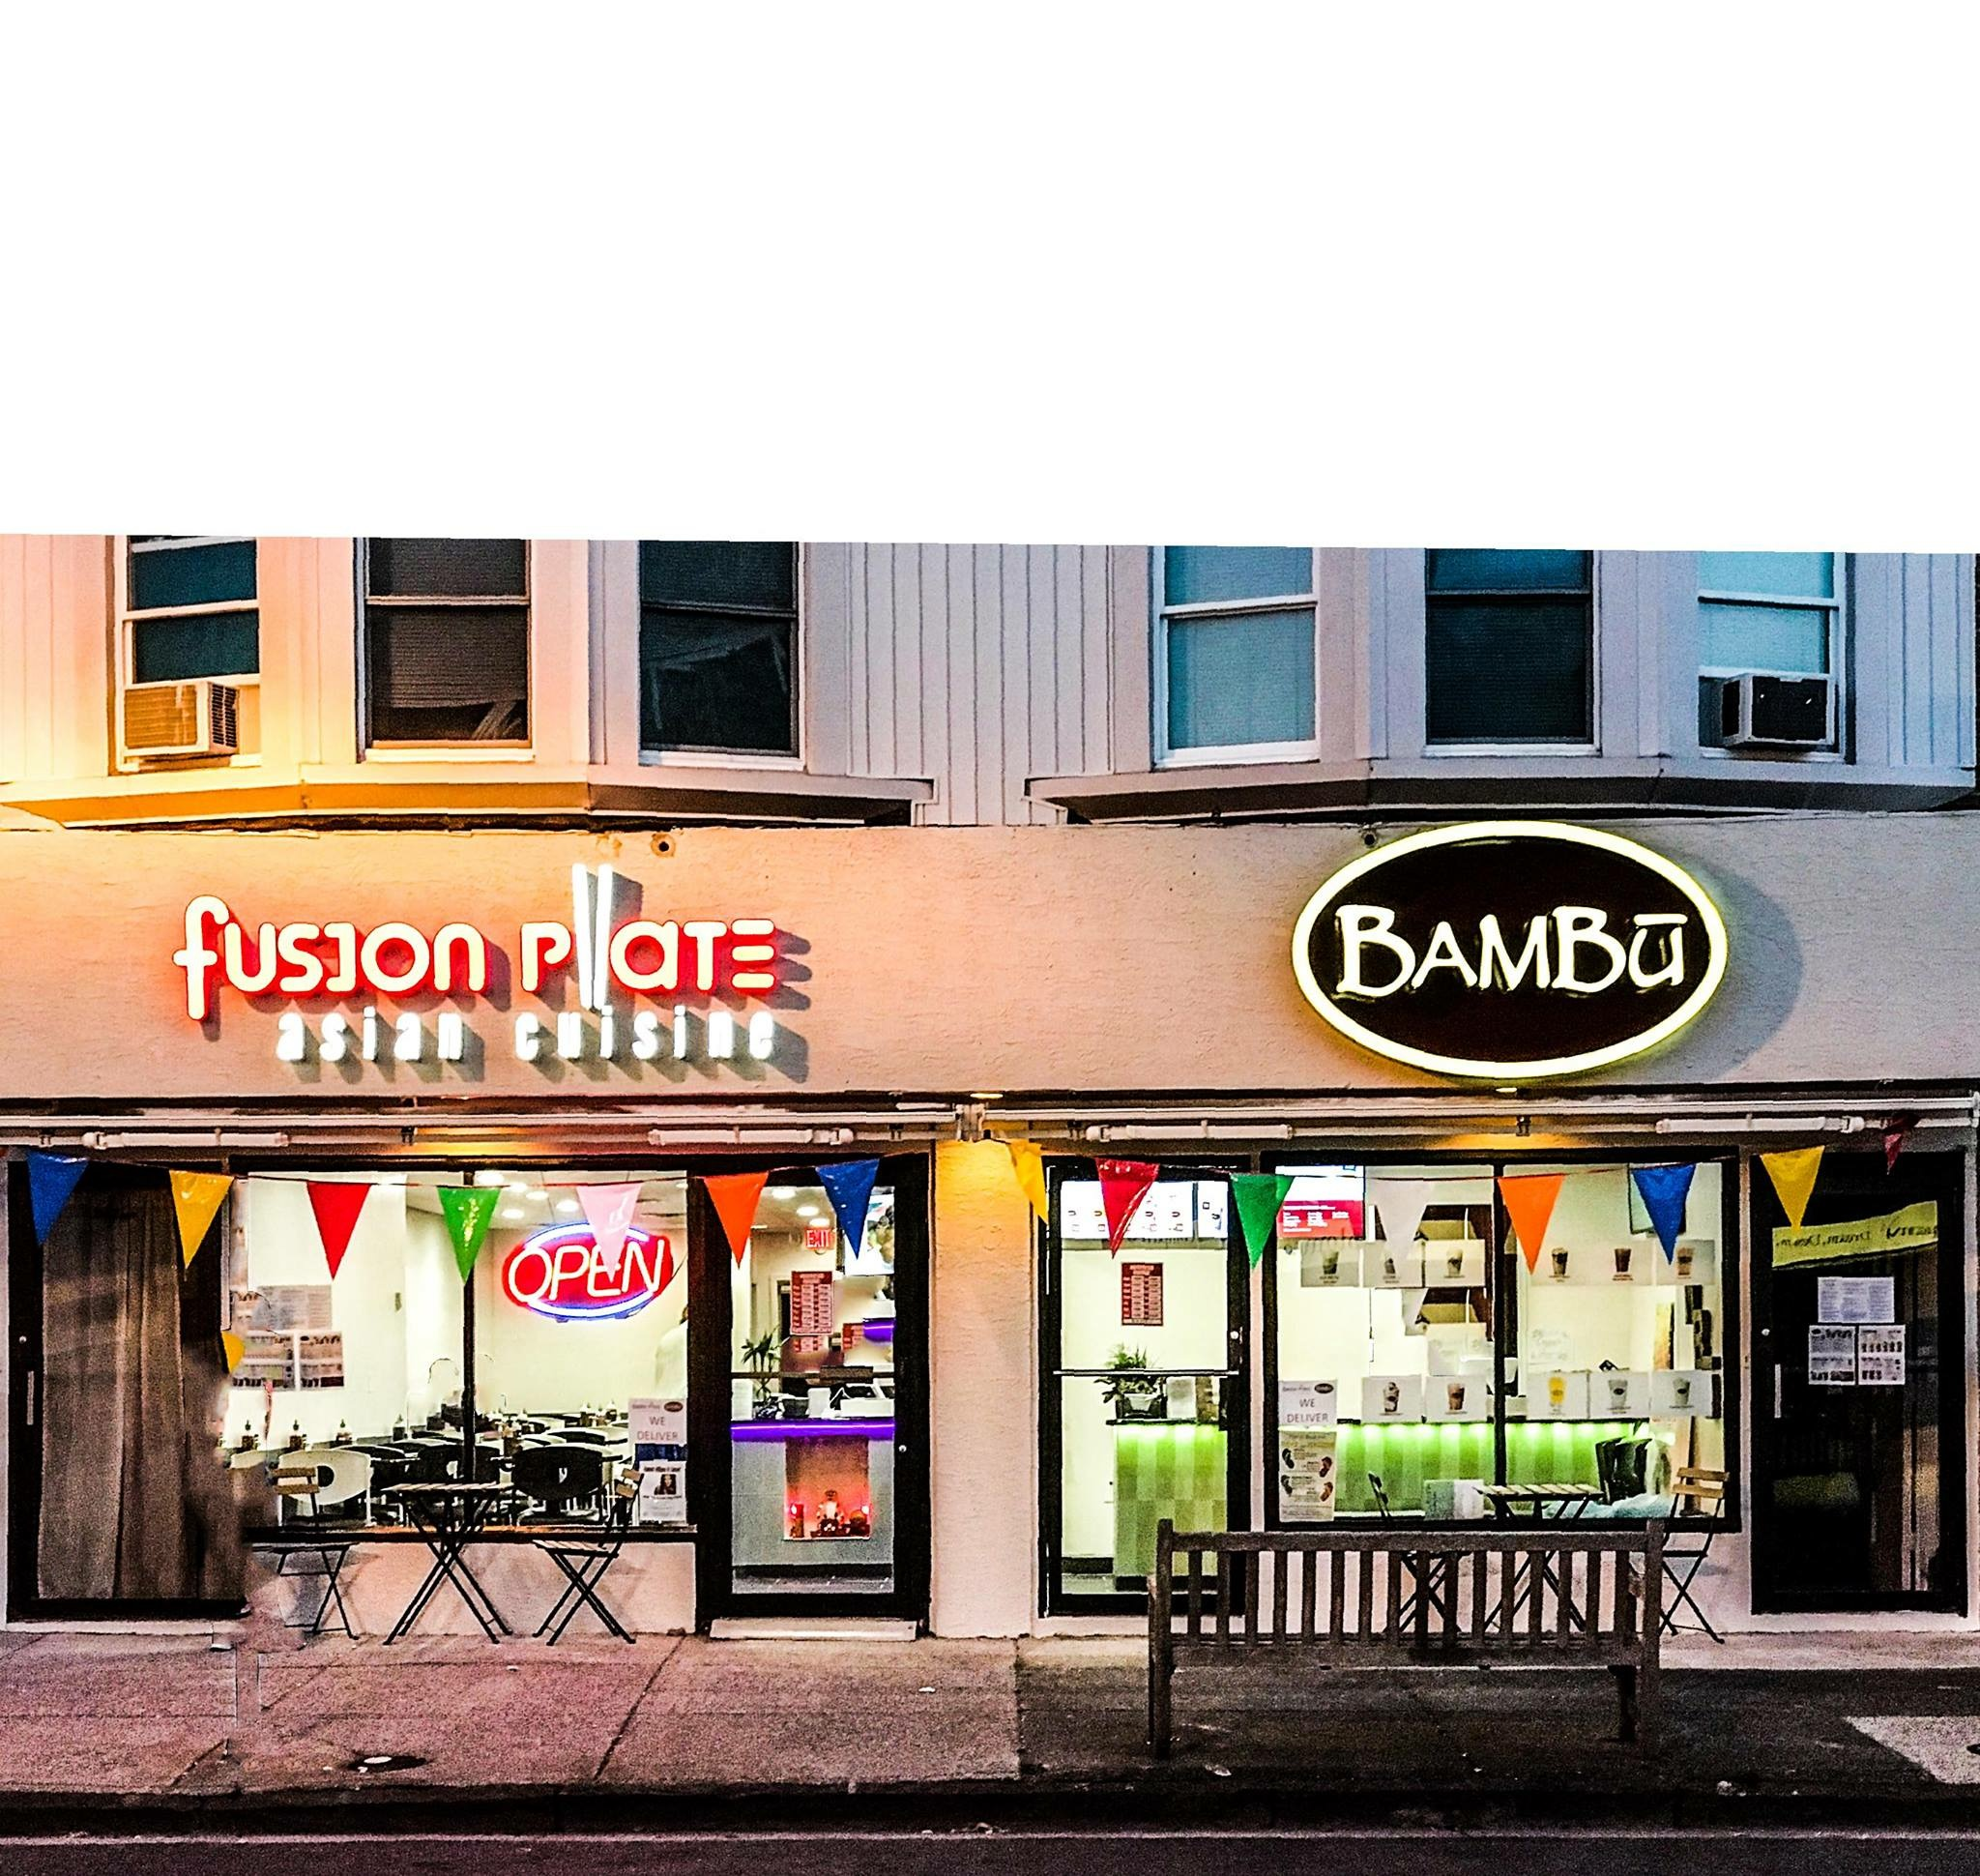 Fusion Plate and Bambu store front